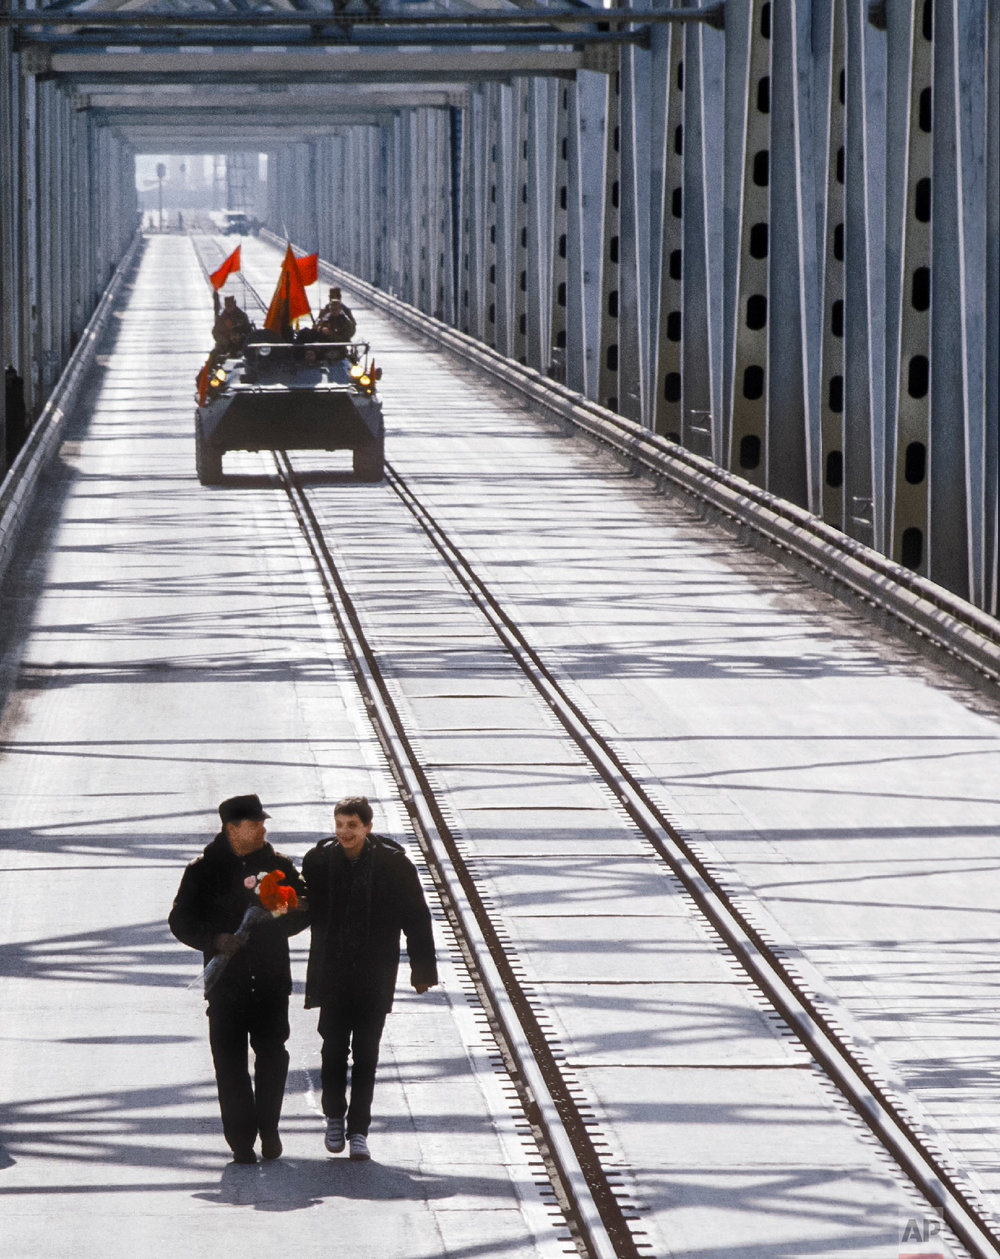 Lt. Gen. Boris Gromov, left, with his son Maxim, walk across a bridge over the Amy Darya River, at Termez, Uzbekistan on Feb. 15, 1989. (AP Photo/Vyacheslav Kiselev)